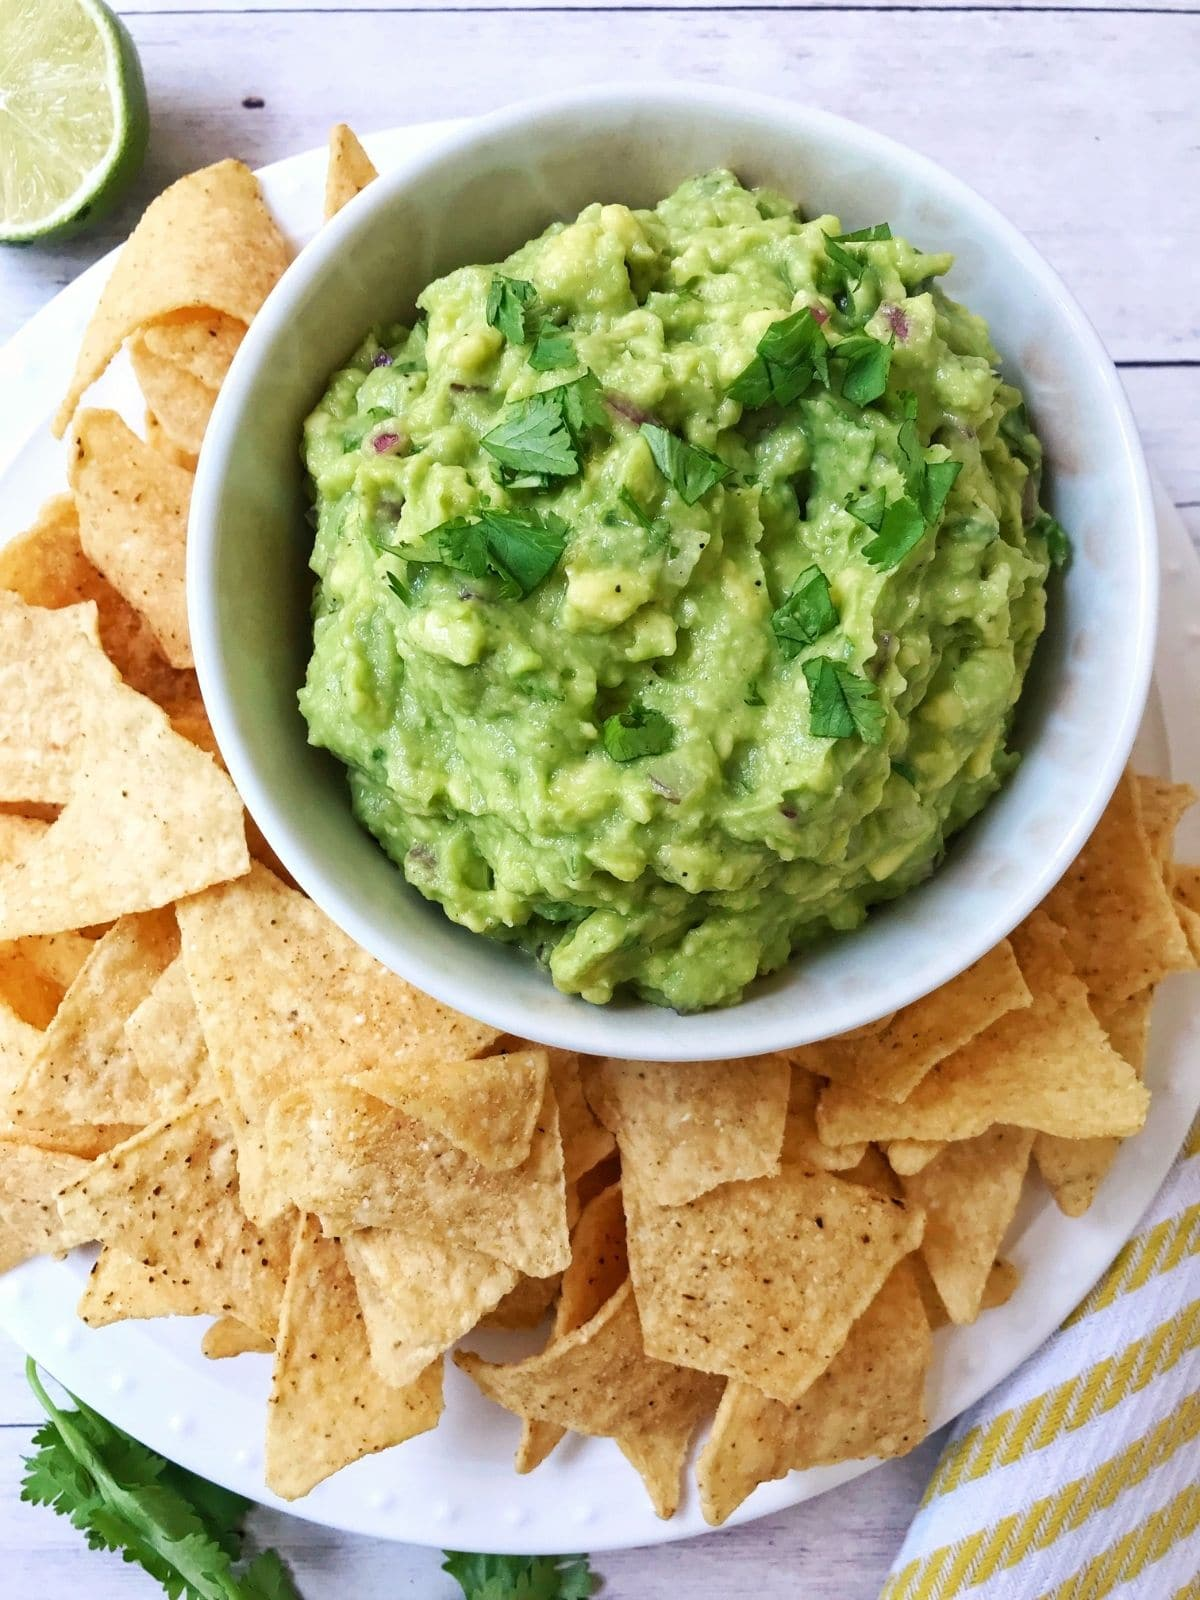 dish of guacamole on a platter with tortilla chips arranged on the side